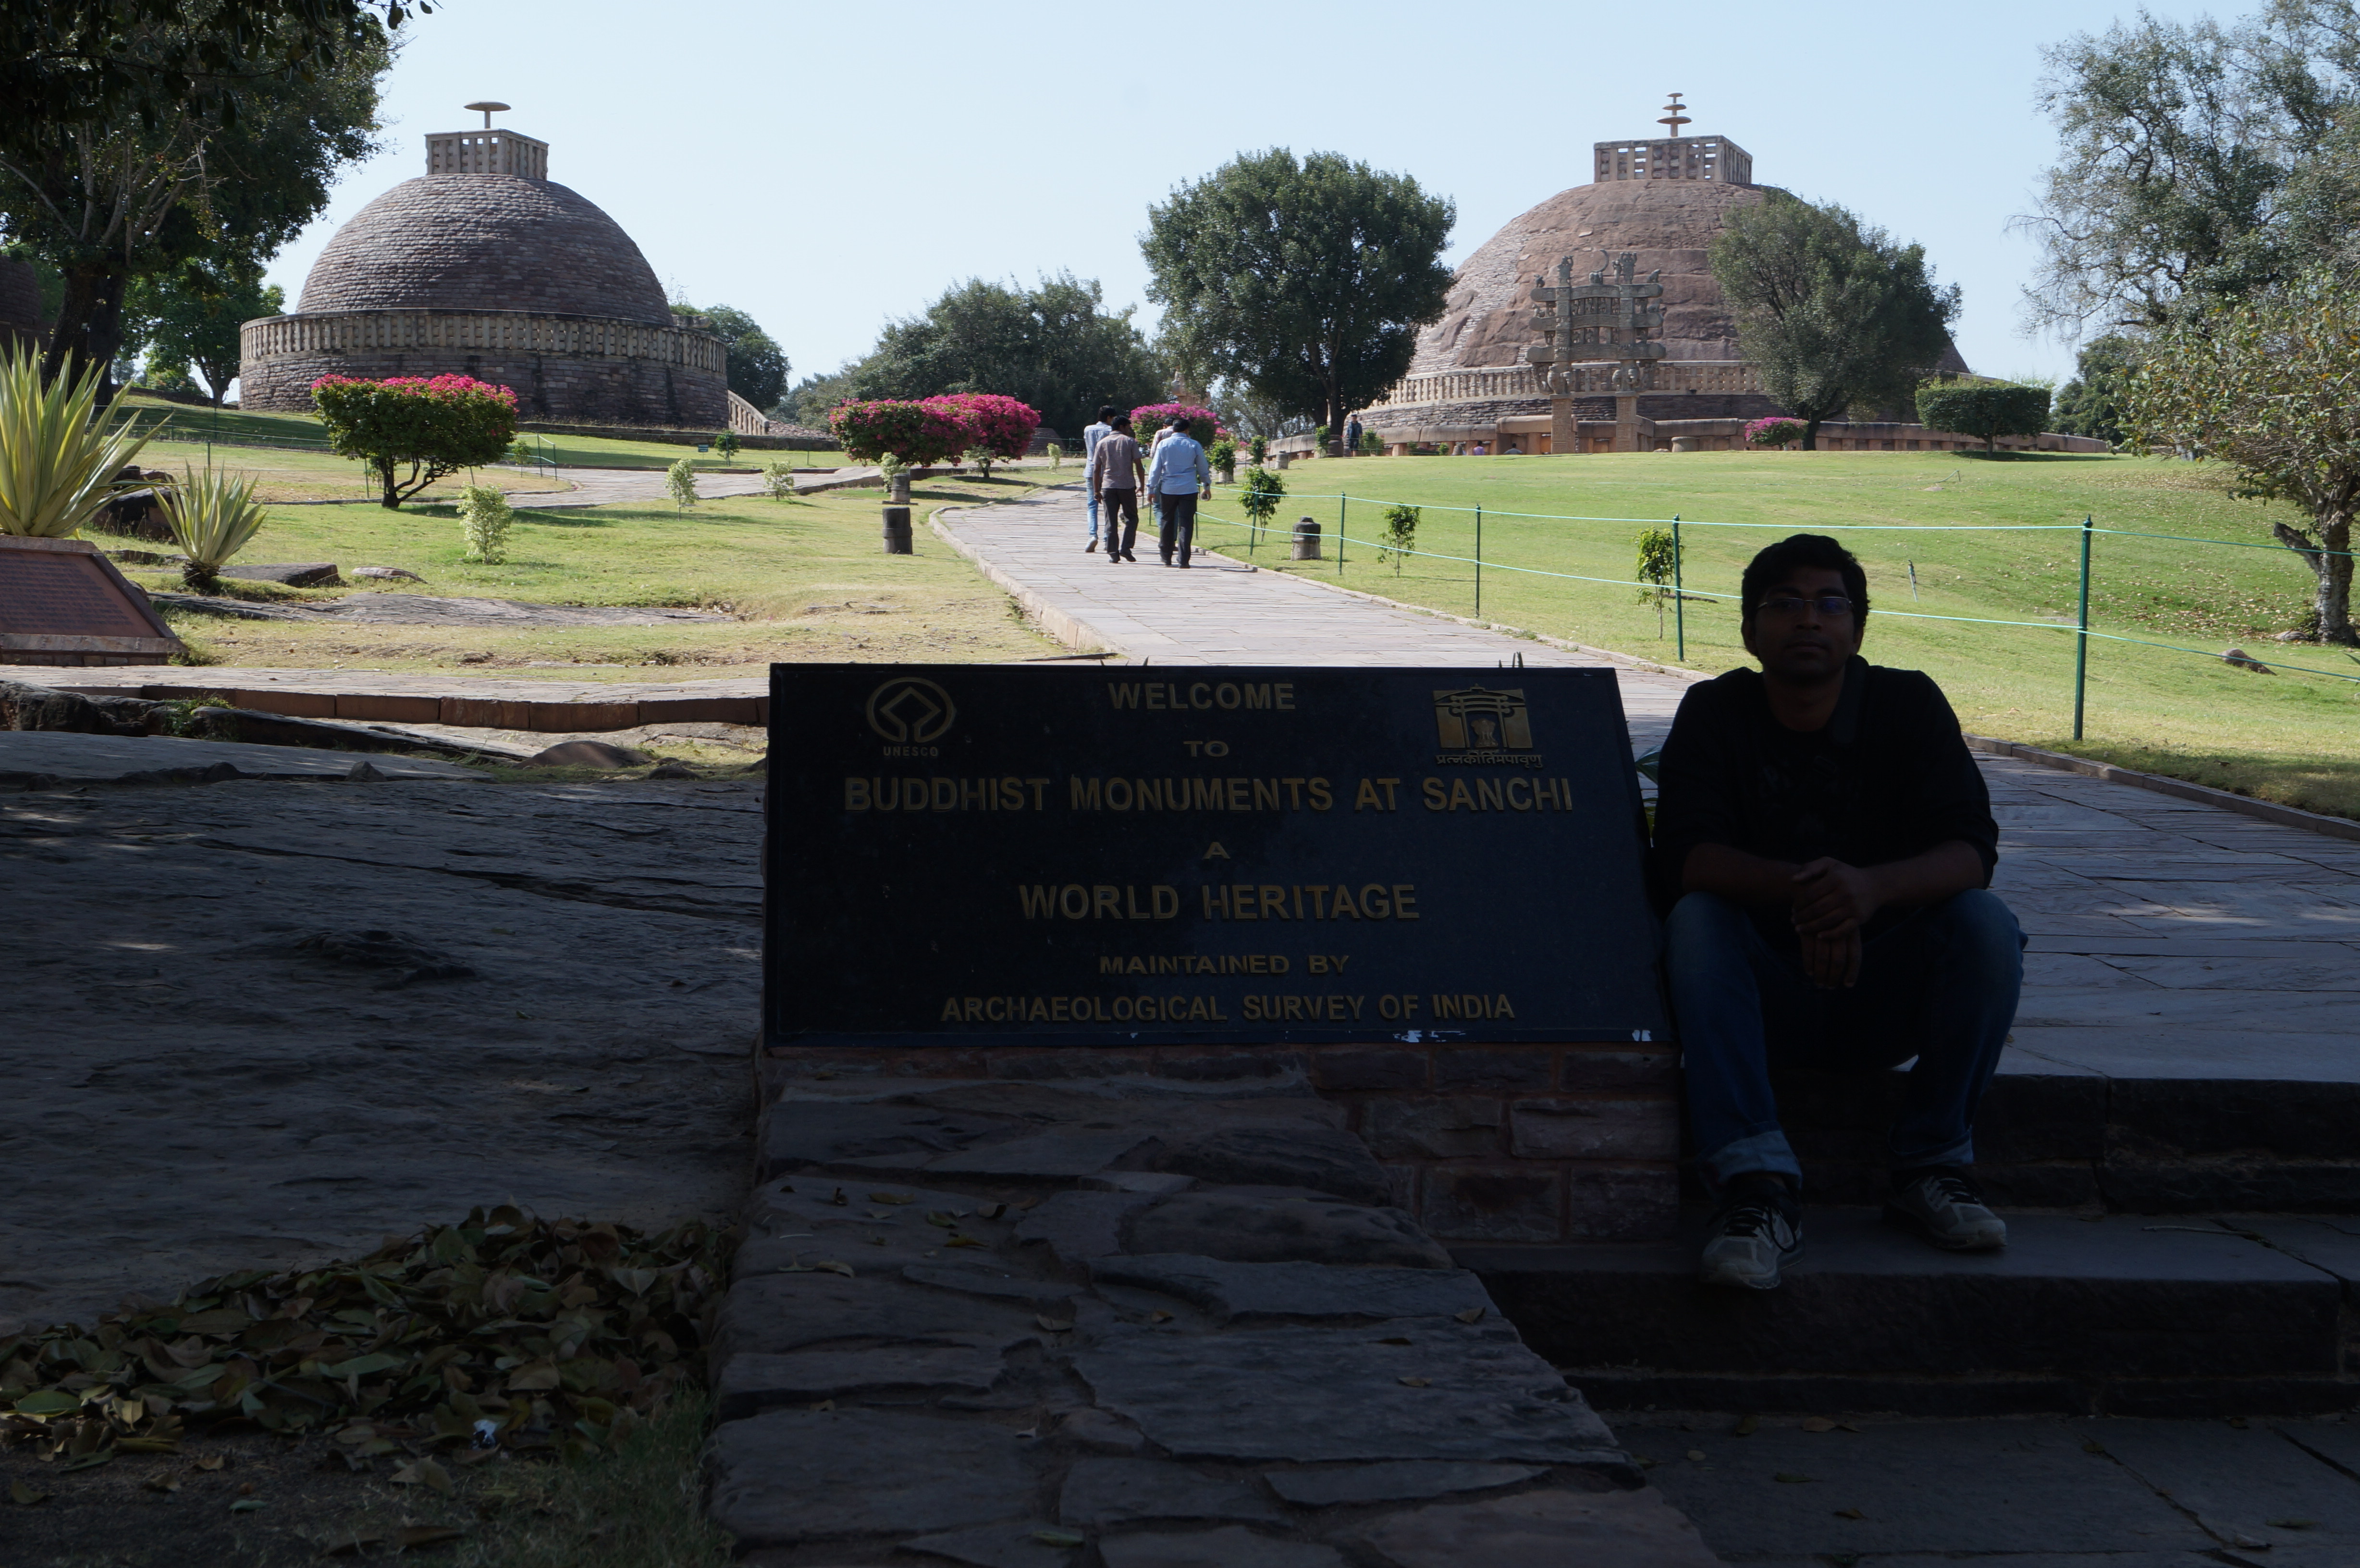 Buddhist Monuments at Sanchi - India prasun bheri